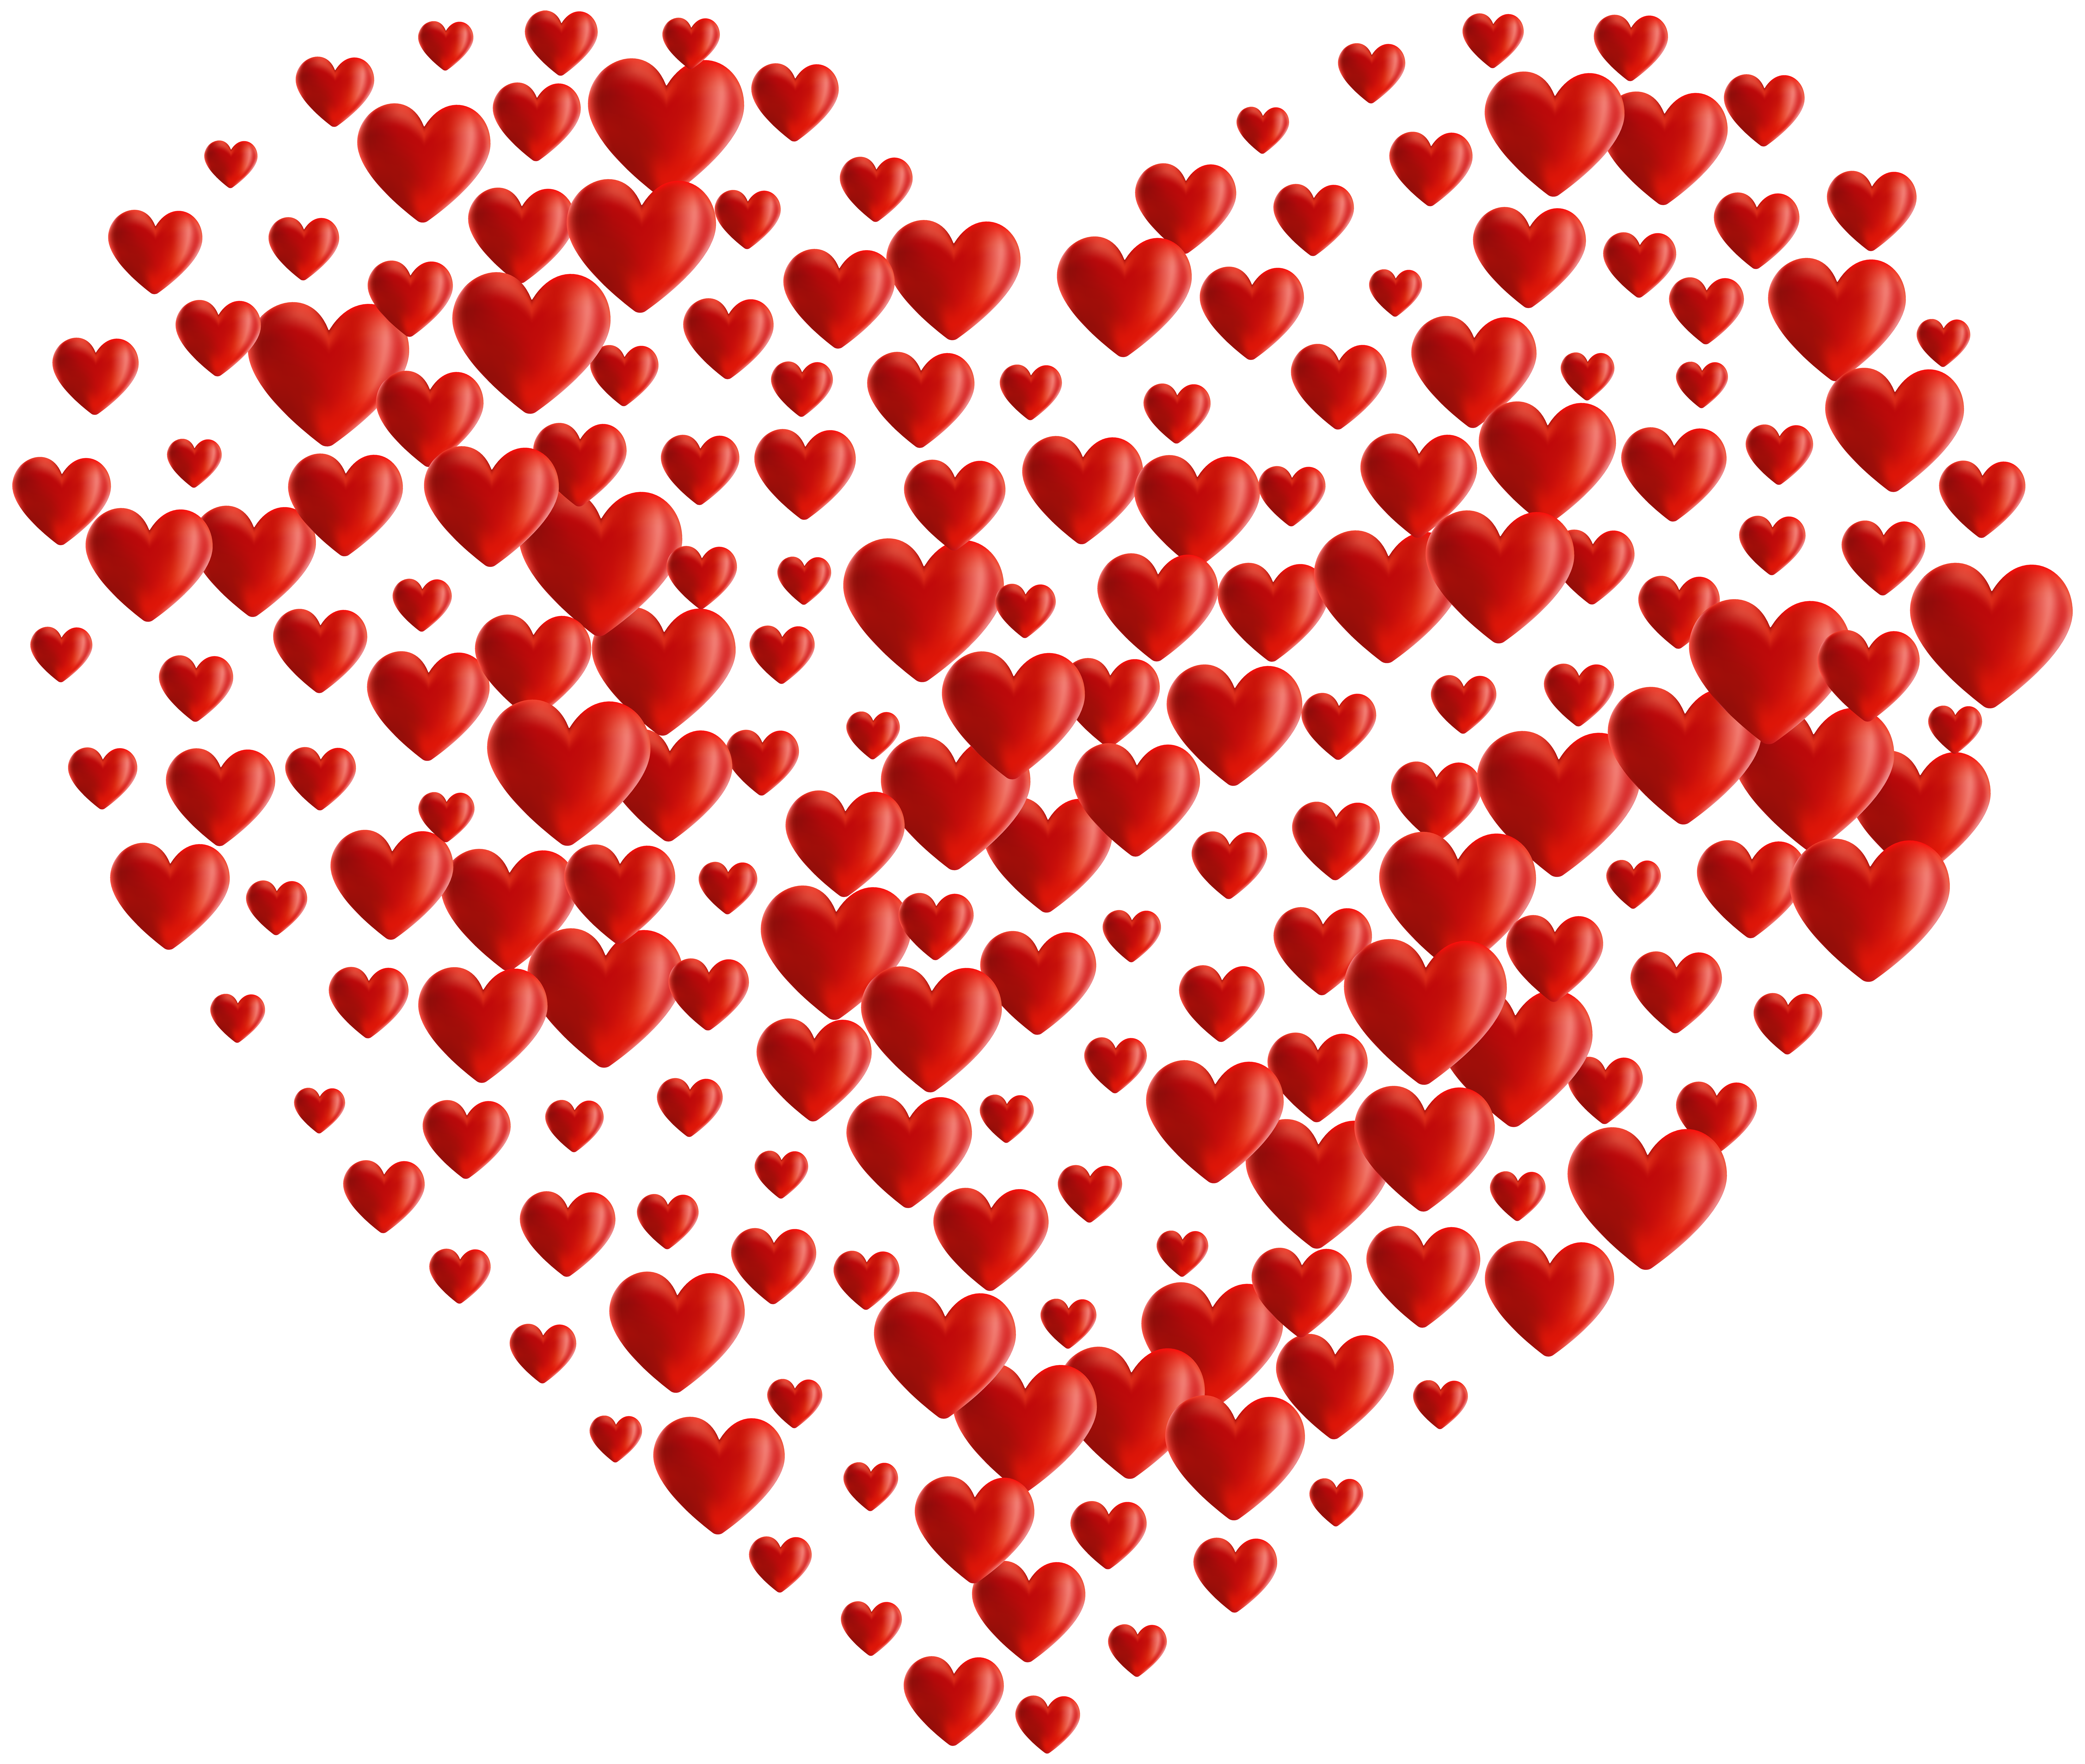 Heart pattern clipart banner royalty free library Heart of Hearts Transparent PNG Clip Art | Gallery Yopriceville ... banner royalty free library